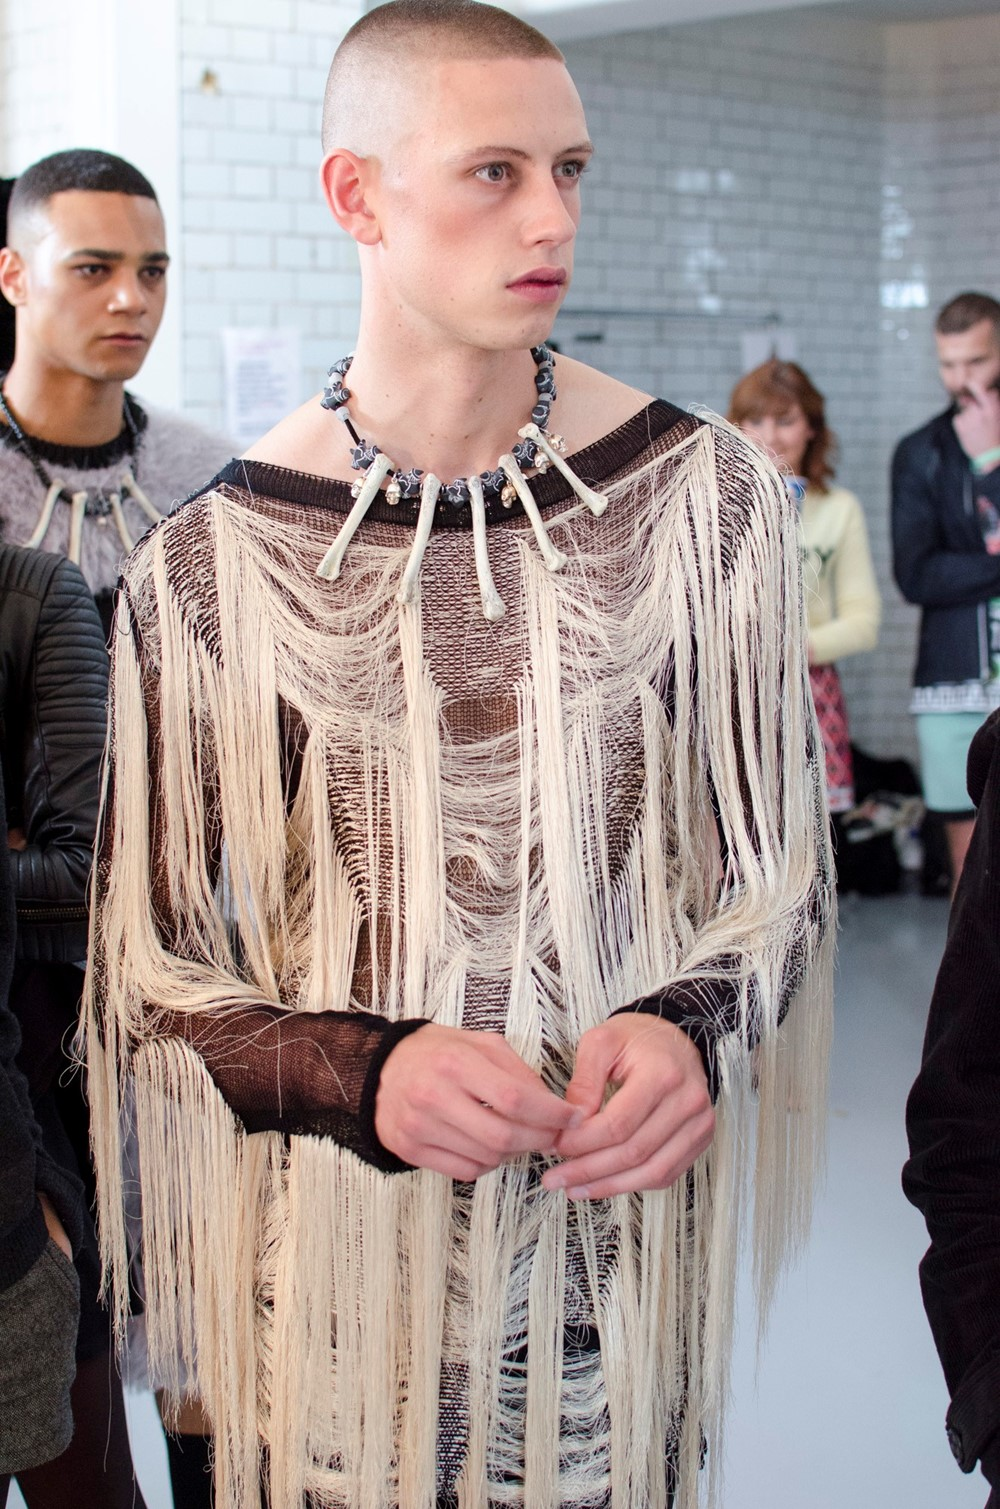 Sibling SS15 Mens collections, Dazed backstage